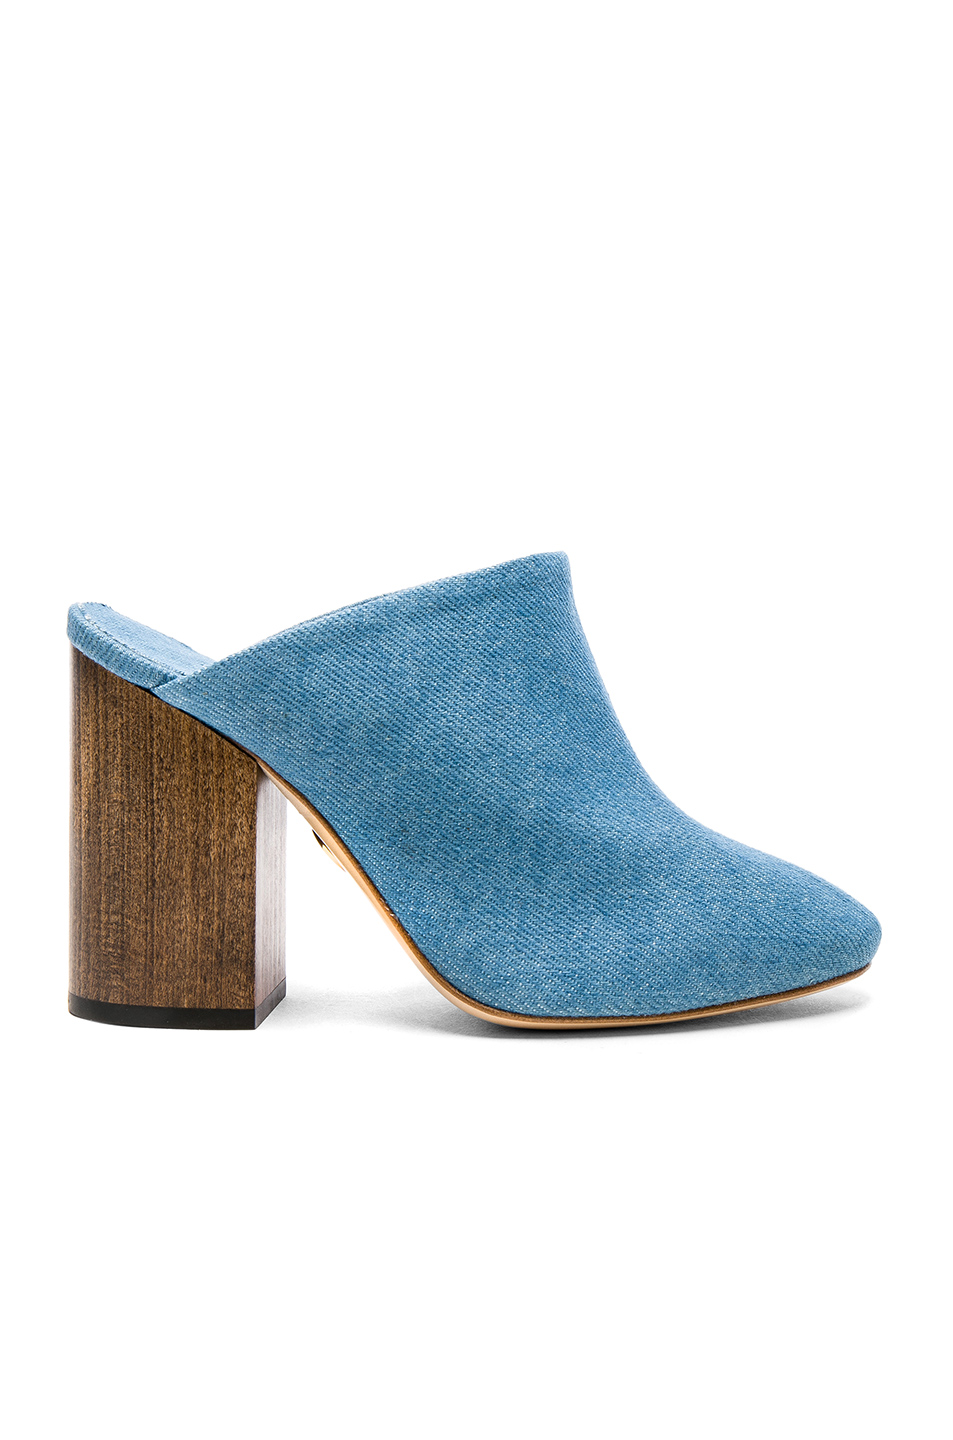 Brother Vellies Denim Bianca Mules in Blue